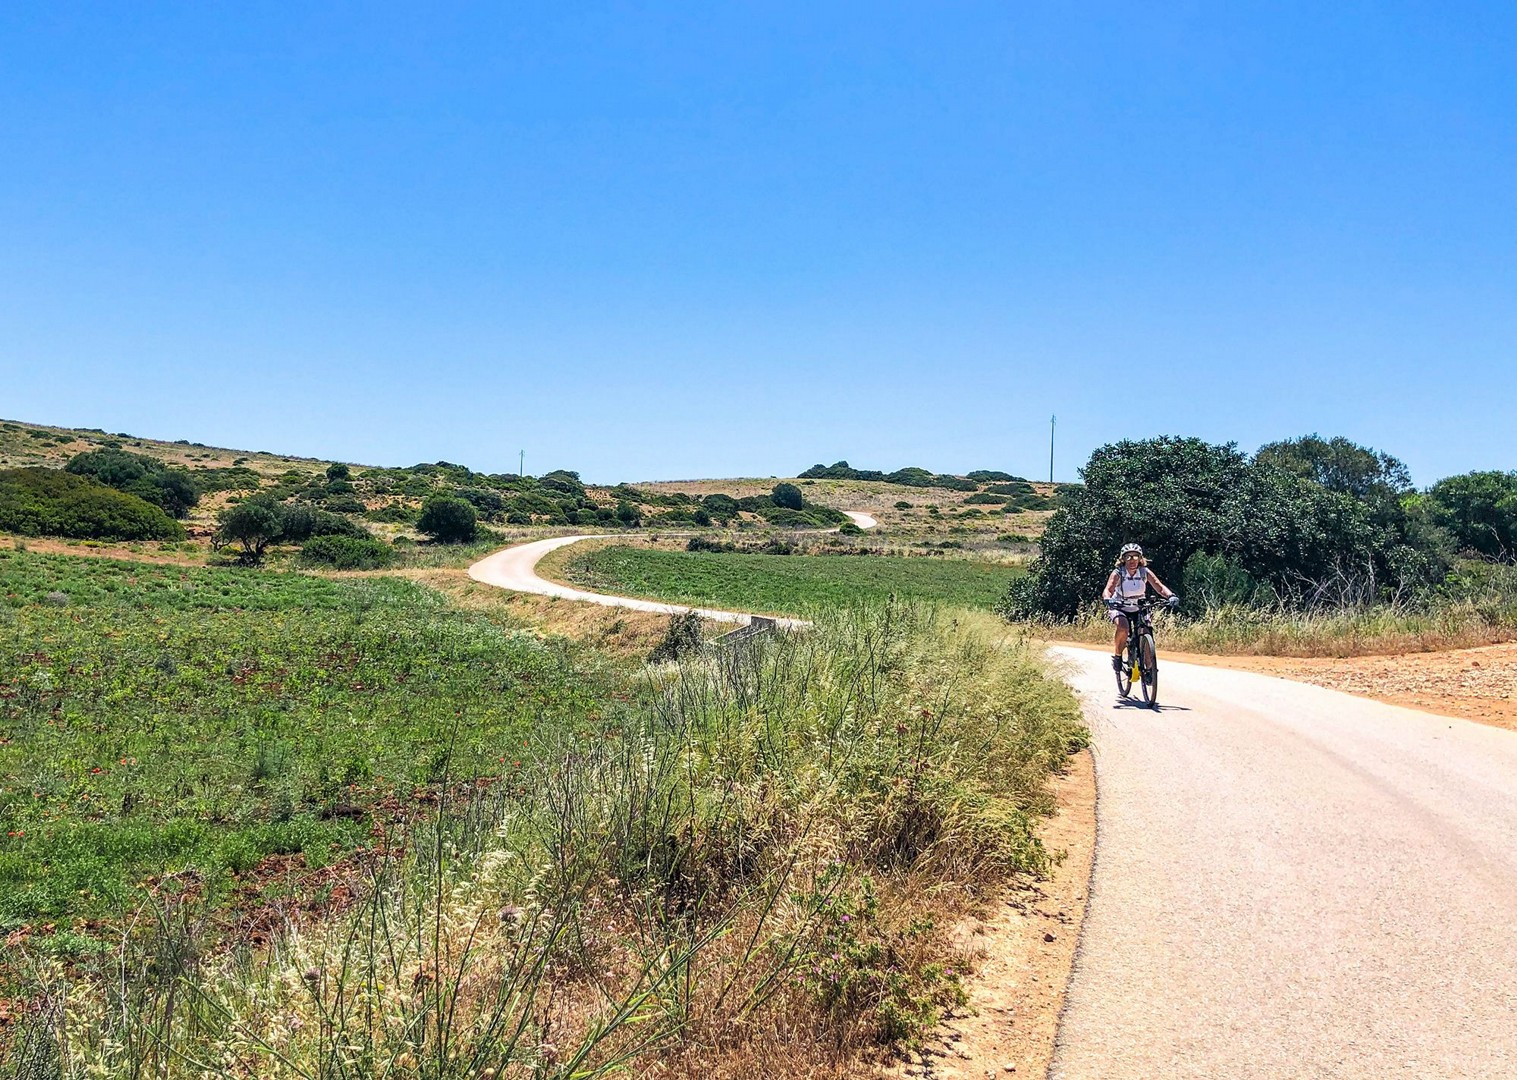 portugal-cycling-self-guided-holiday-saddle-skedaddle-trips.jpg - Portugal - Alentejo and Algarve Coastal Explorer - Self-Guided Leisure Cycling Holiday - Leisure Cycling